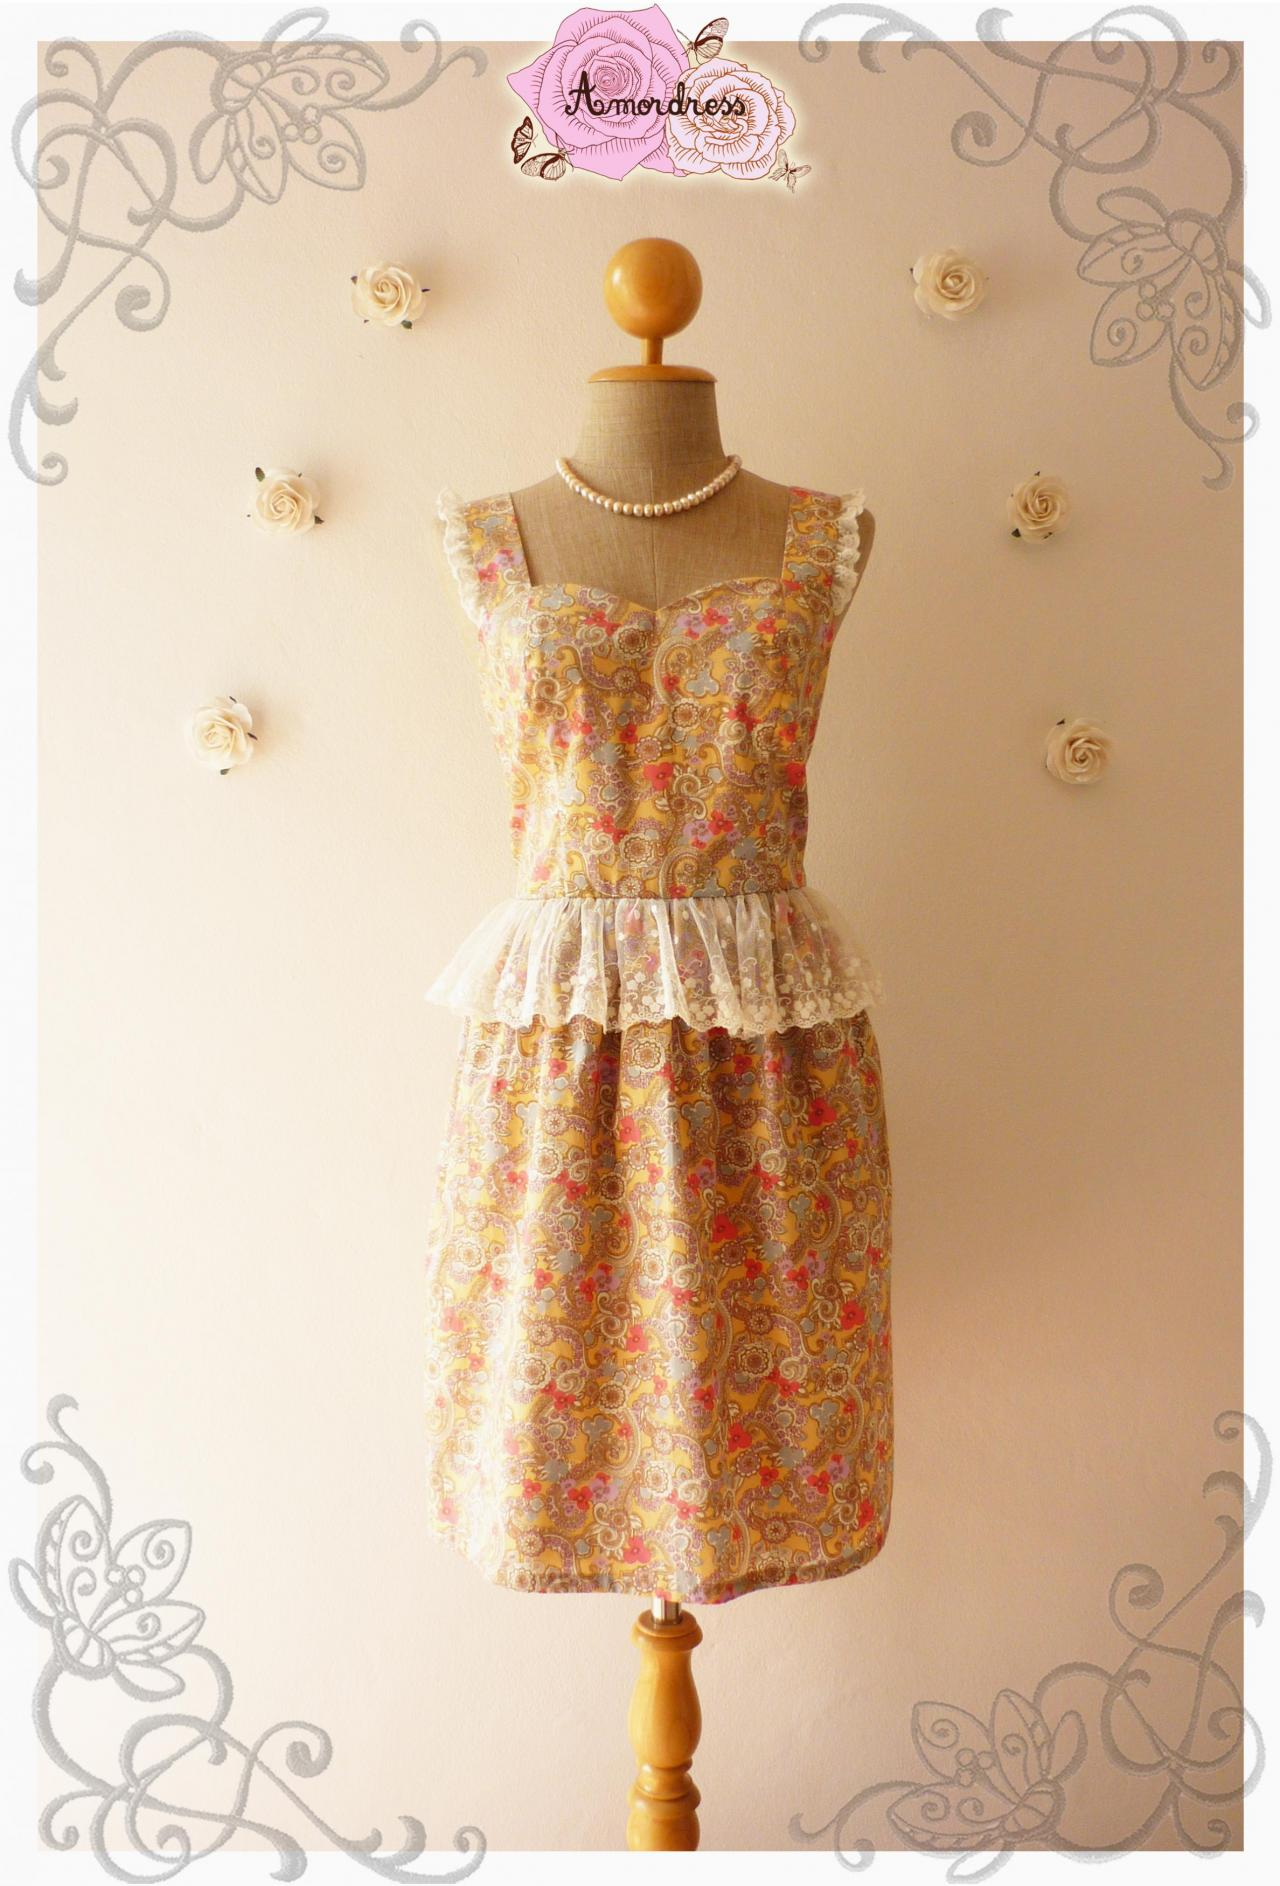 Angel wing sweet dress floral dress peplum summer dress for Angel wings wedding dress